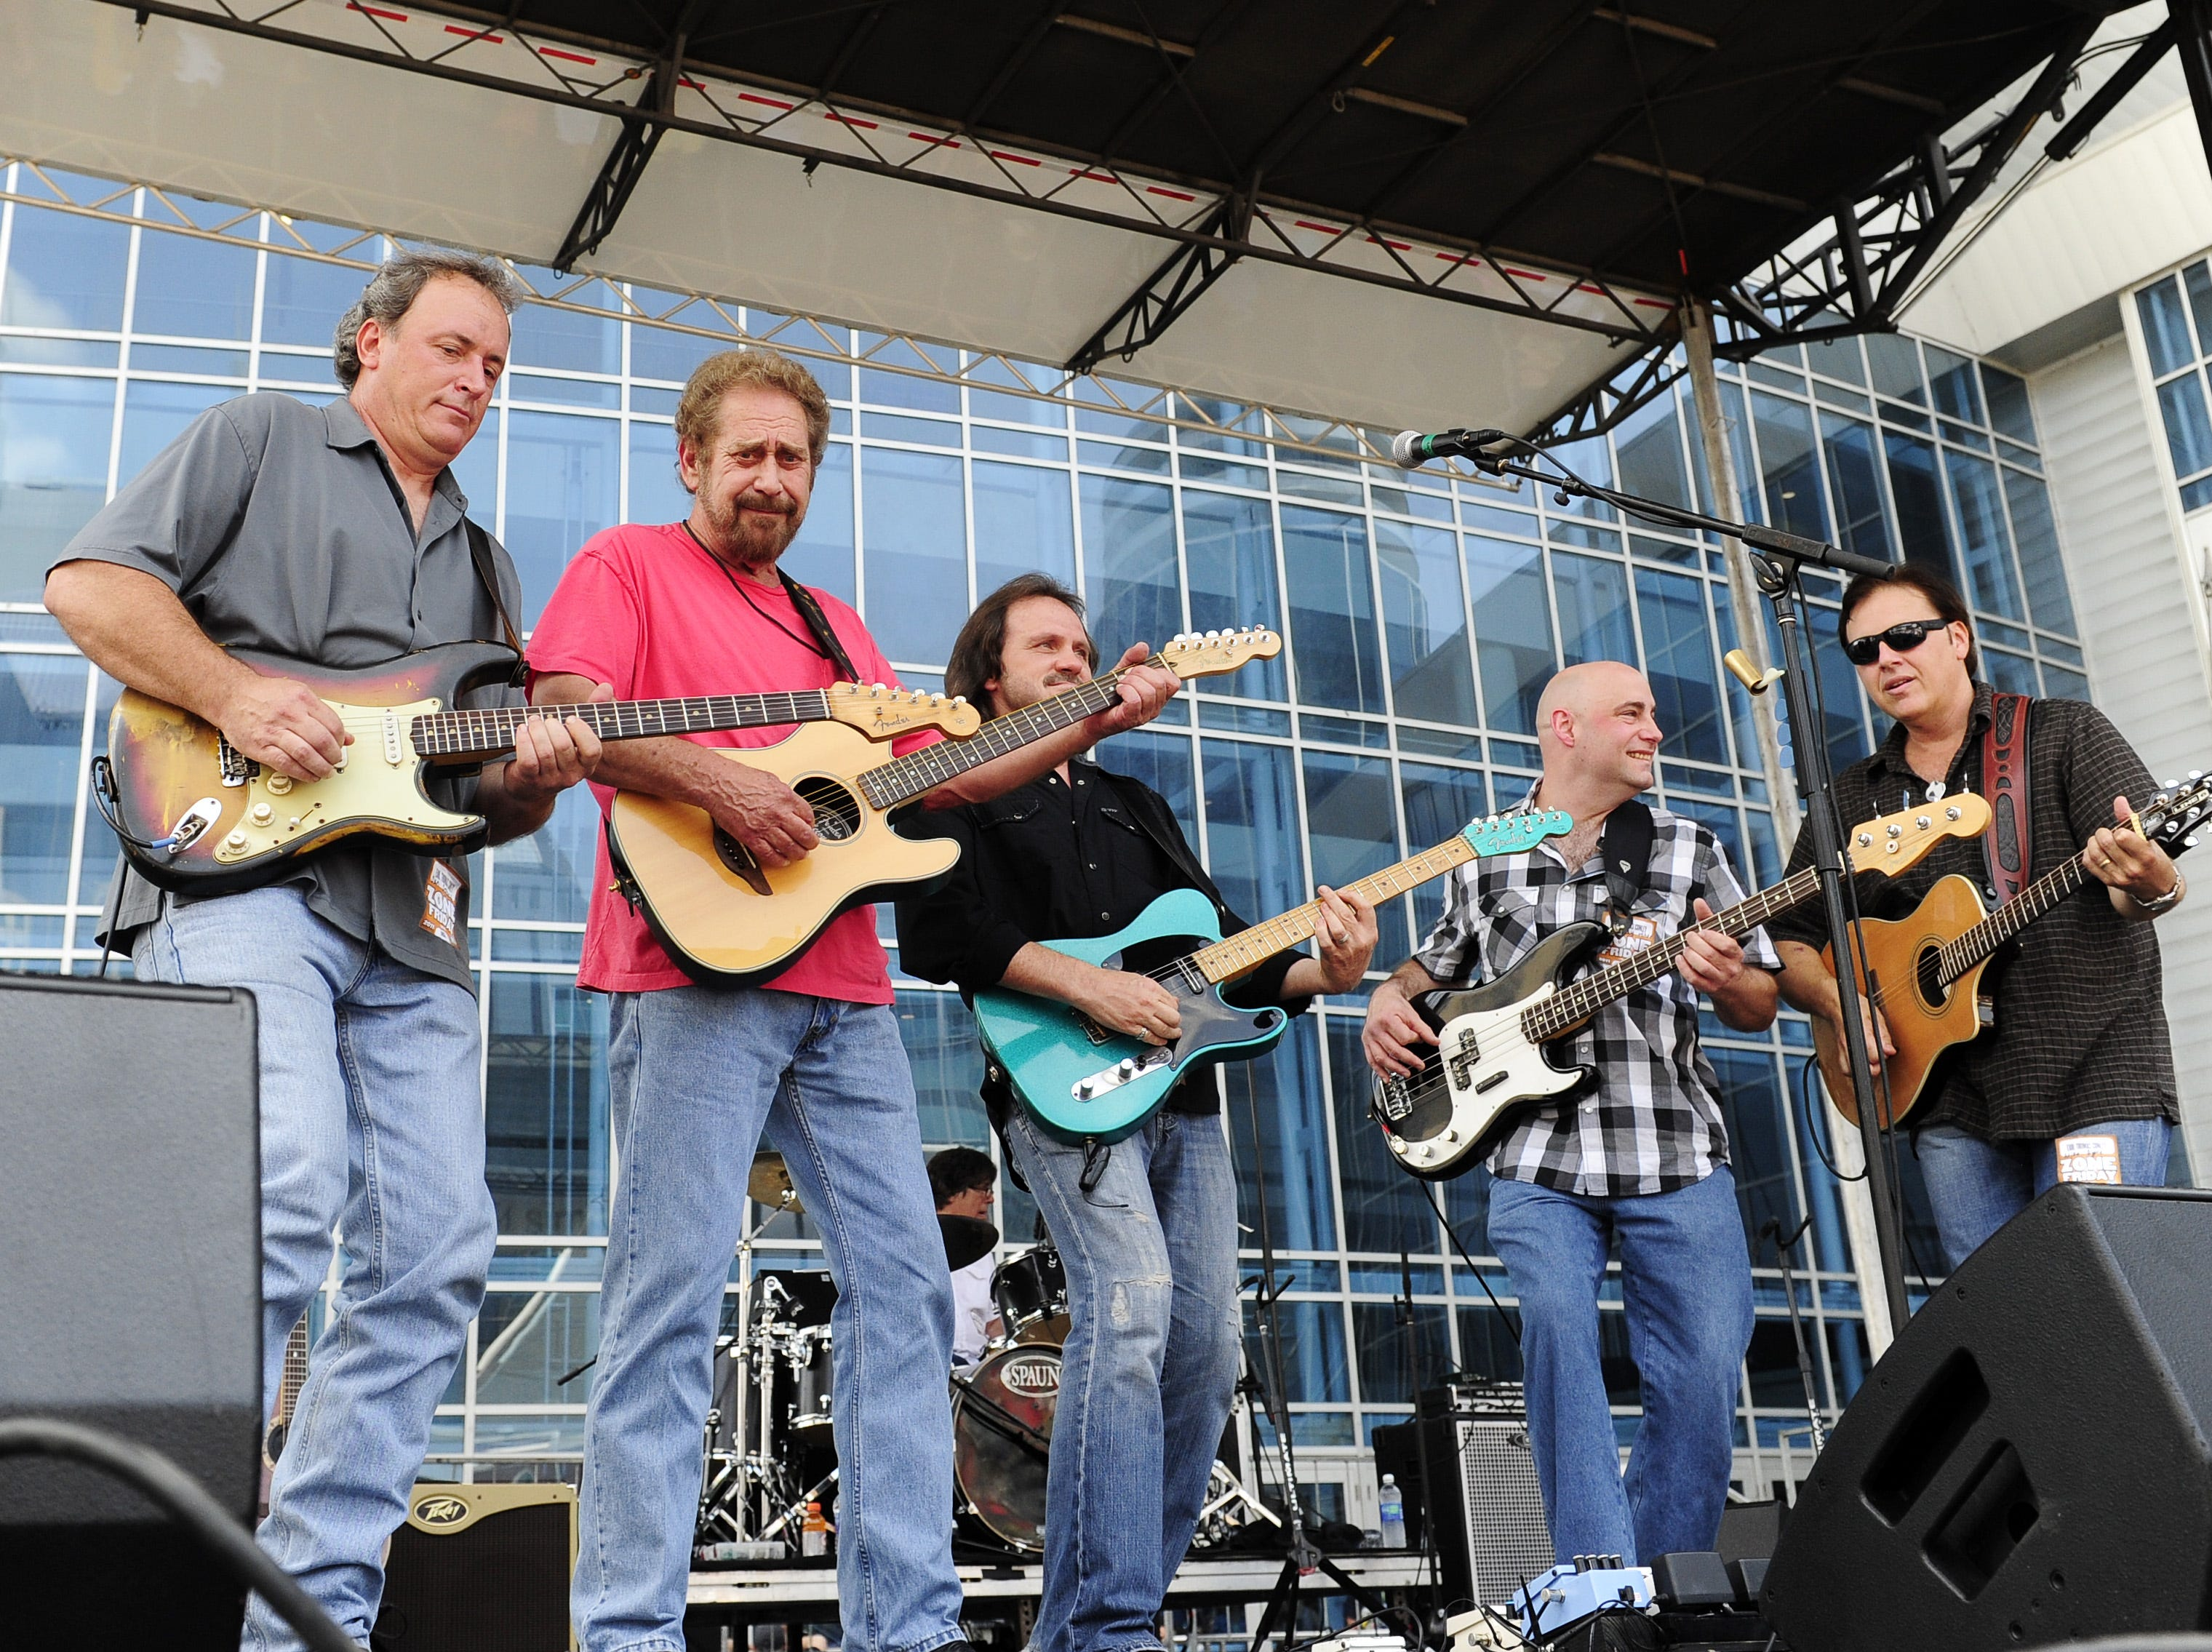 Earl Thomas Conley, second from left, performs during the CMA Music Festival in downtown Nashville on June 10, 2011.